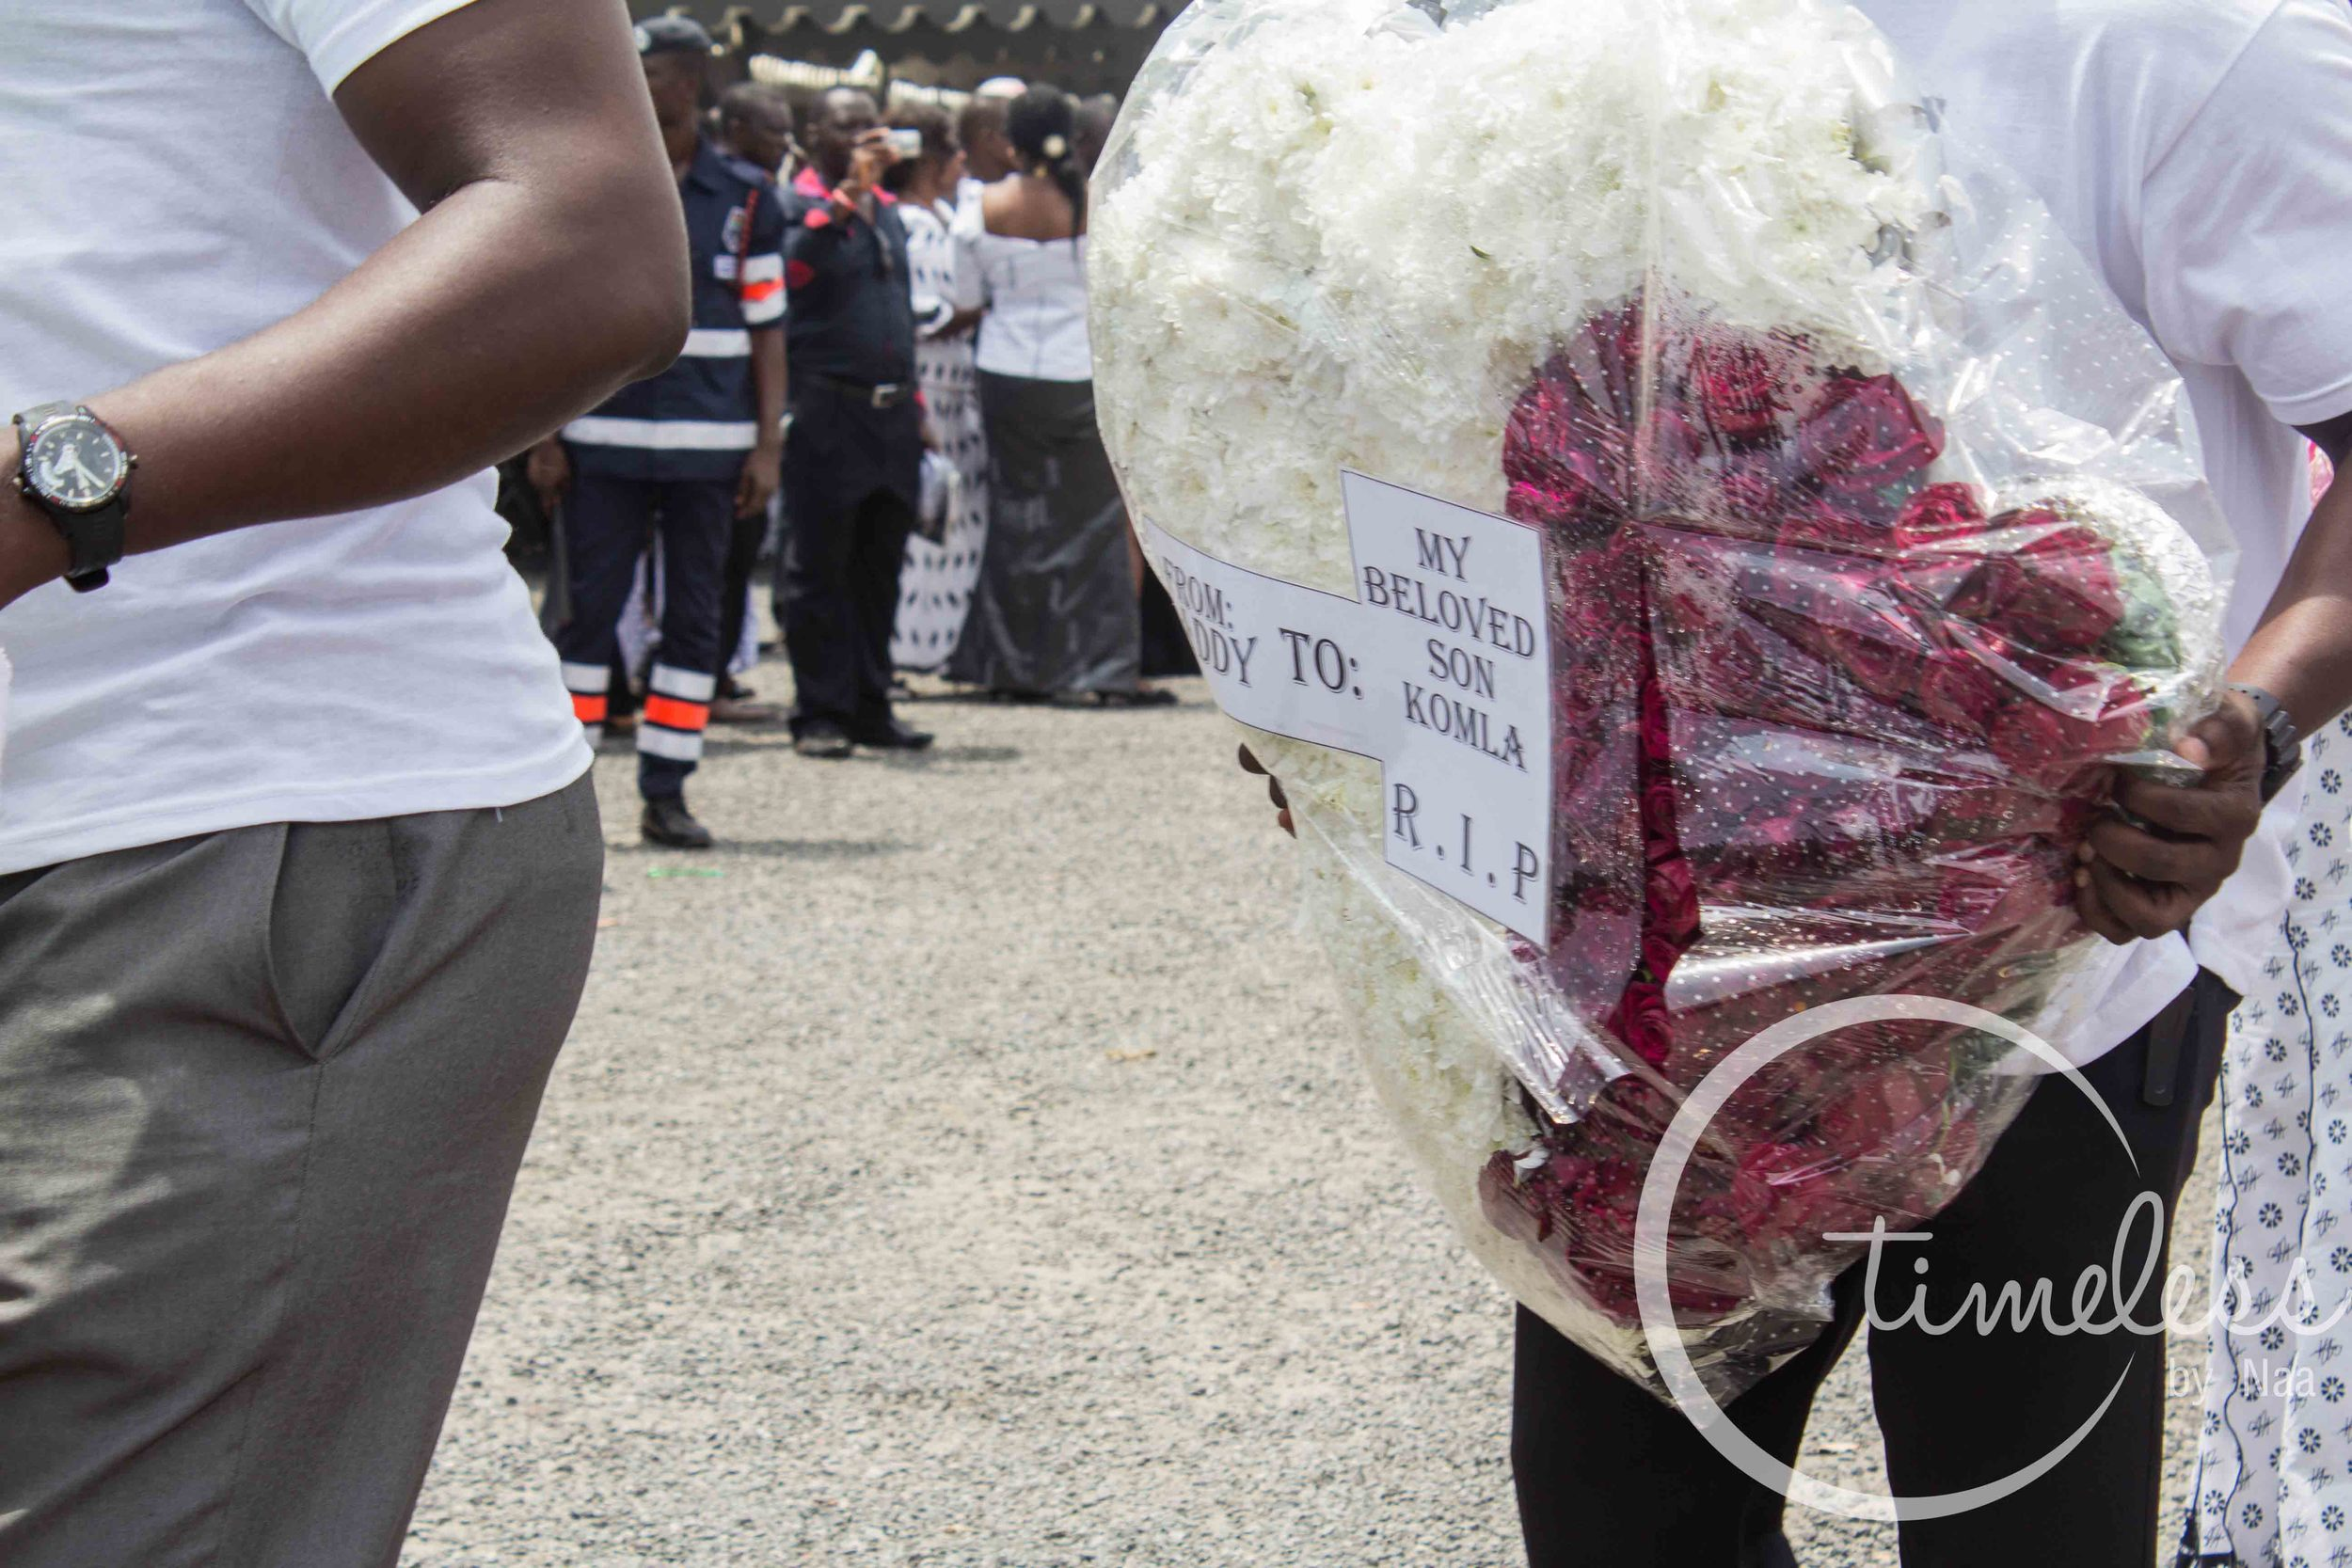 Wreath from Prof. Dumor to his son.